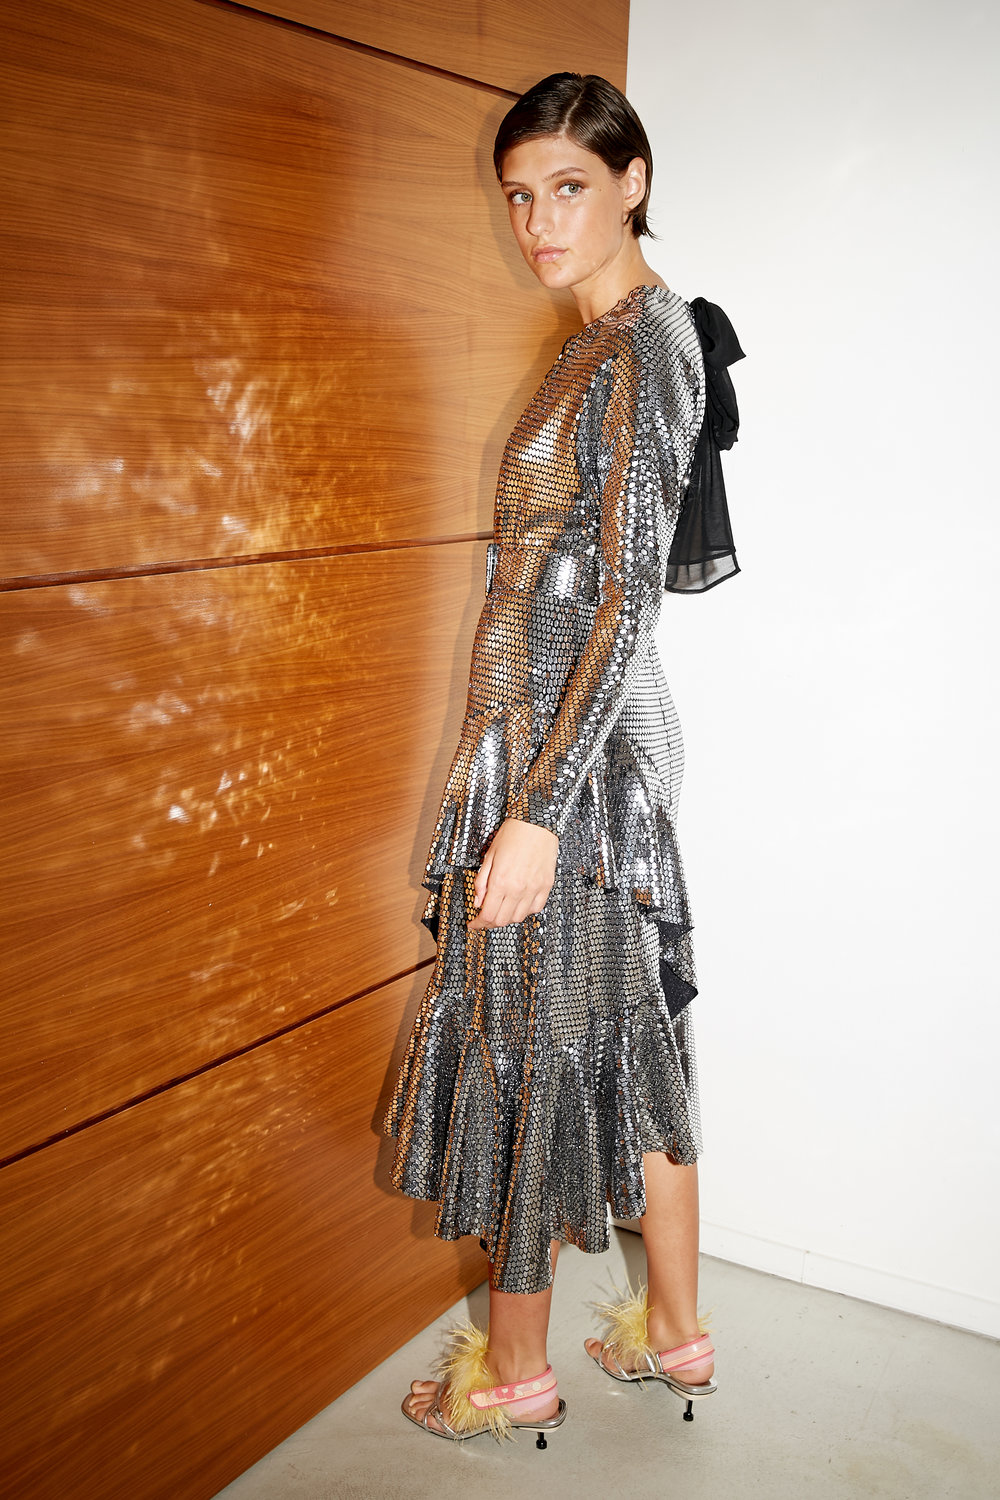 Model shows backside of reflective mirrored jersey dress with long sleeves and ruffled hem